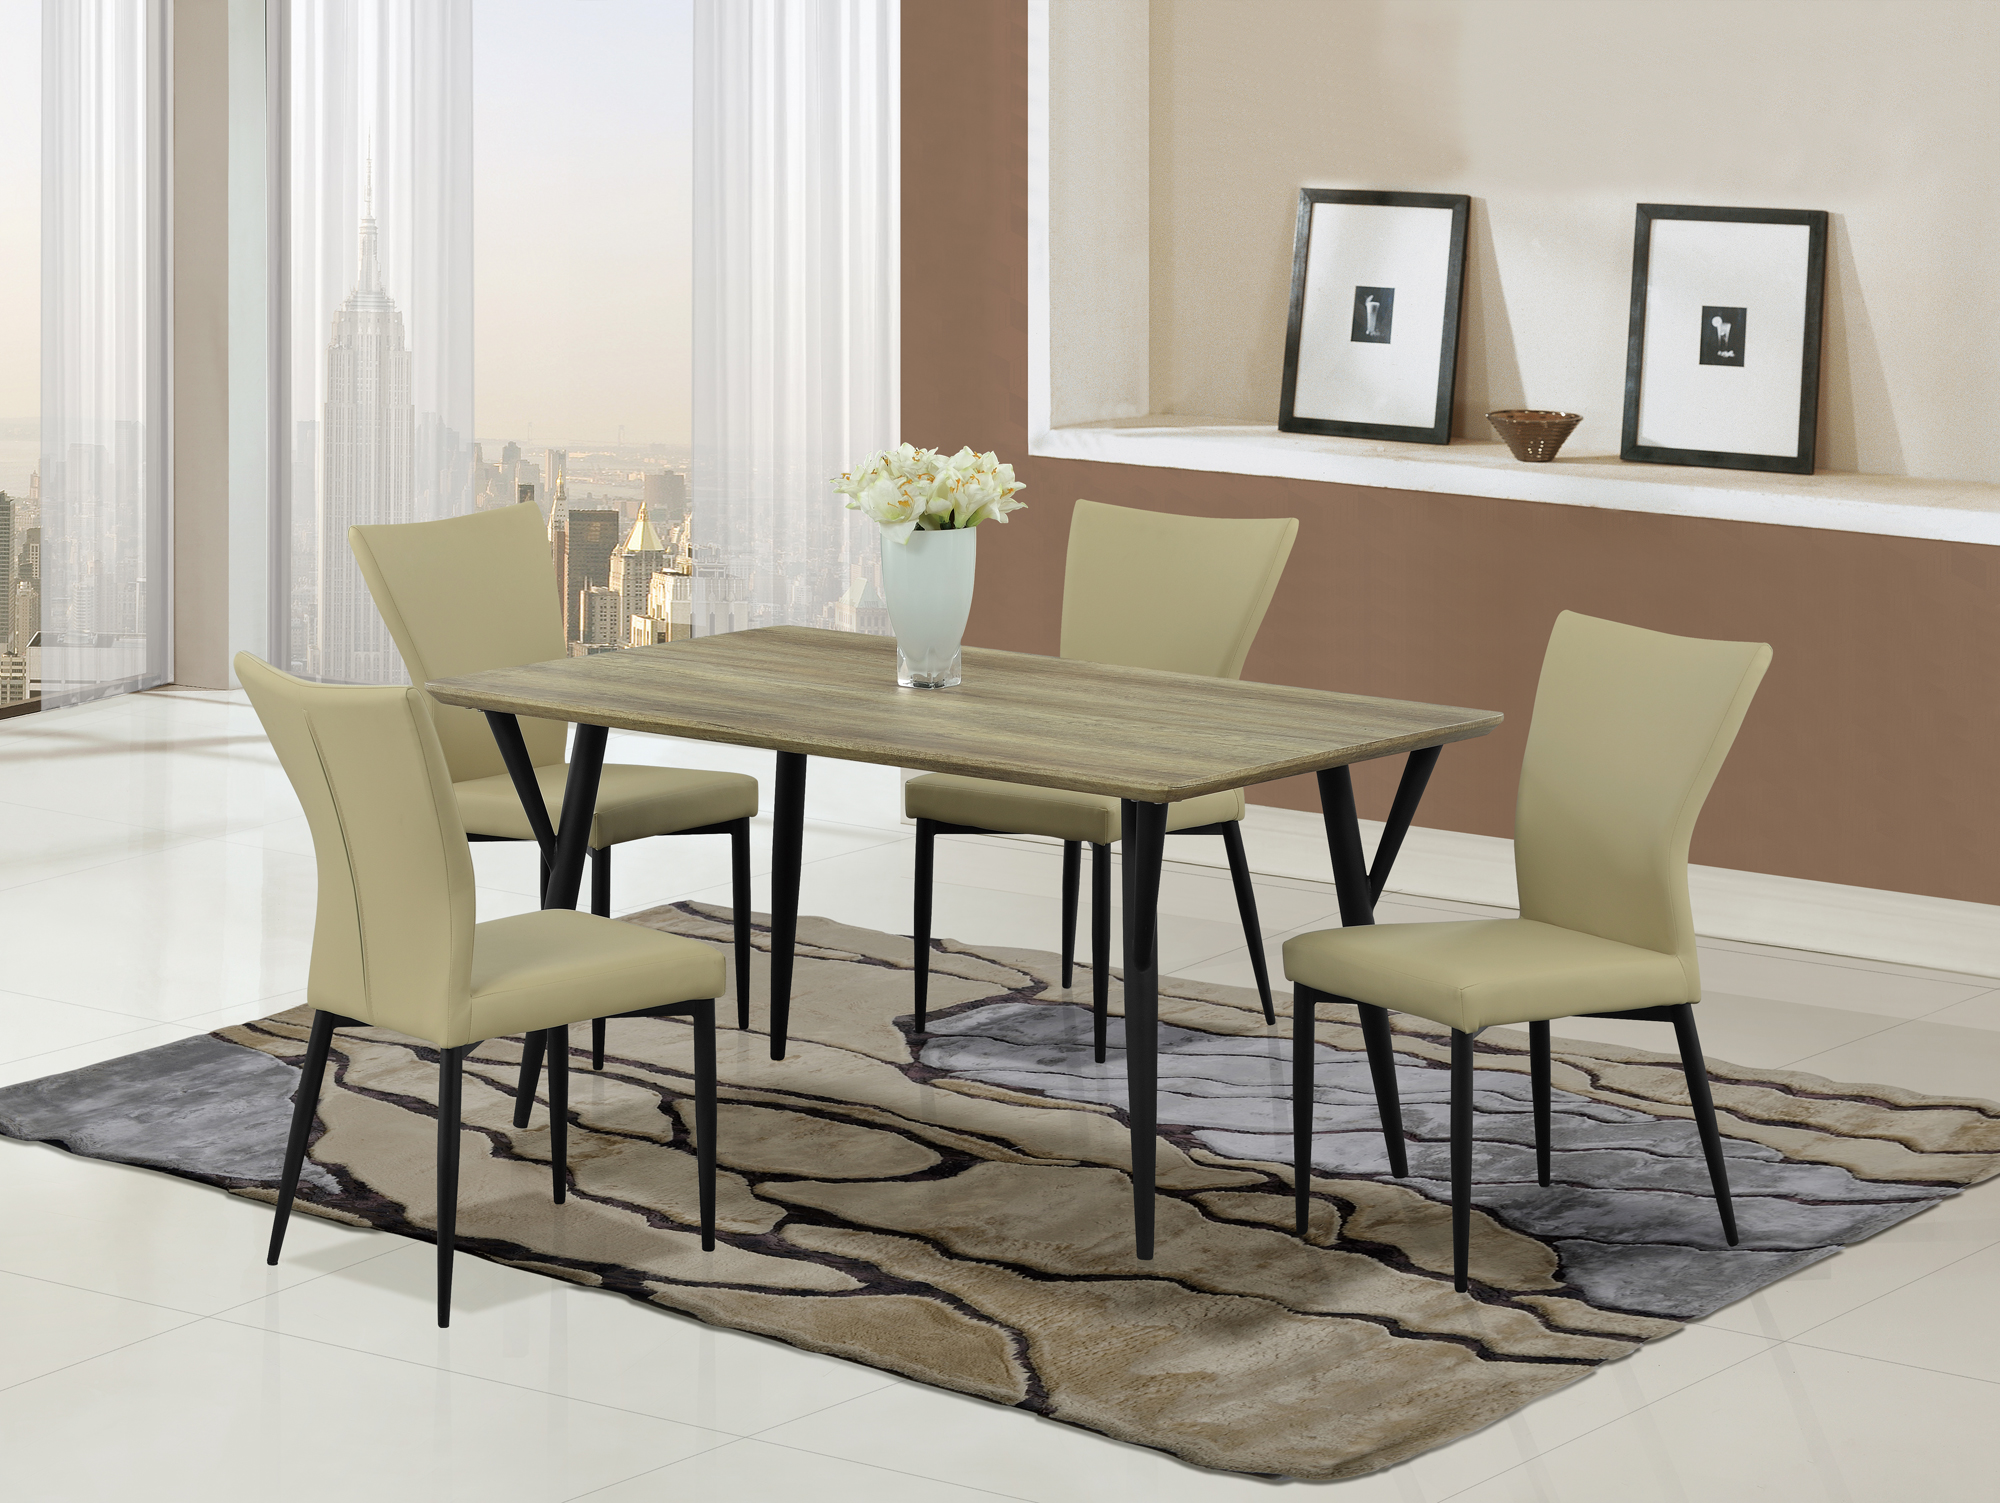 Dining Table D794DT Black Legs Khaki Top By Global Furniture